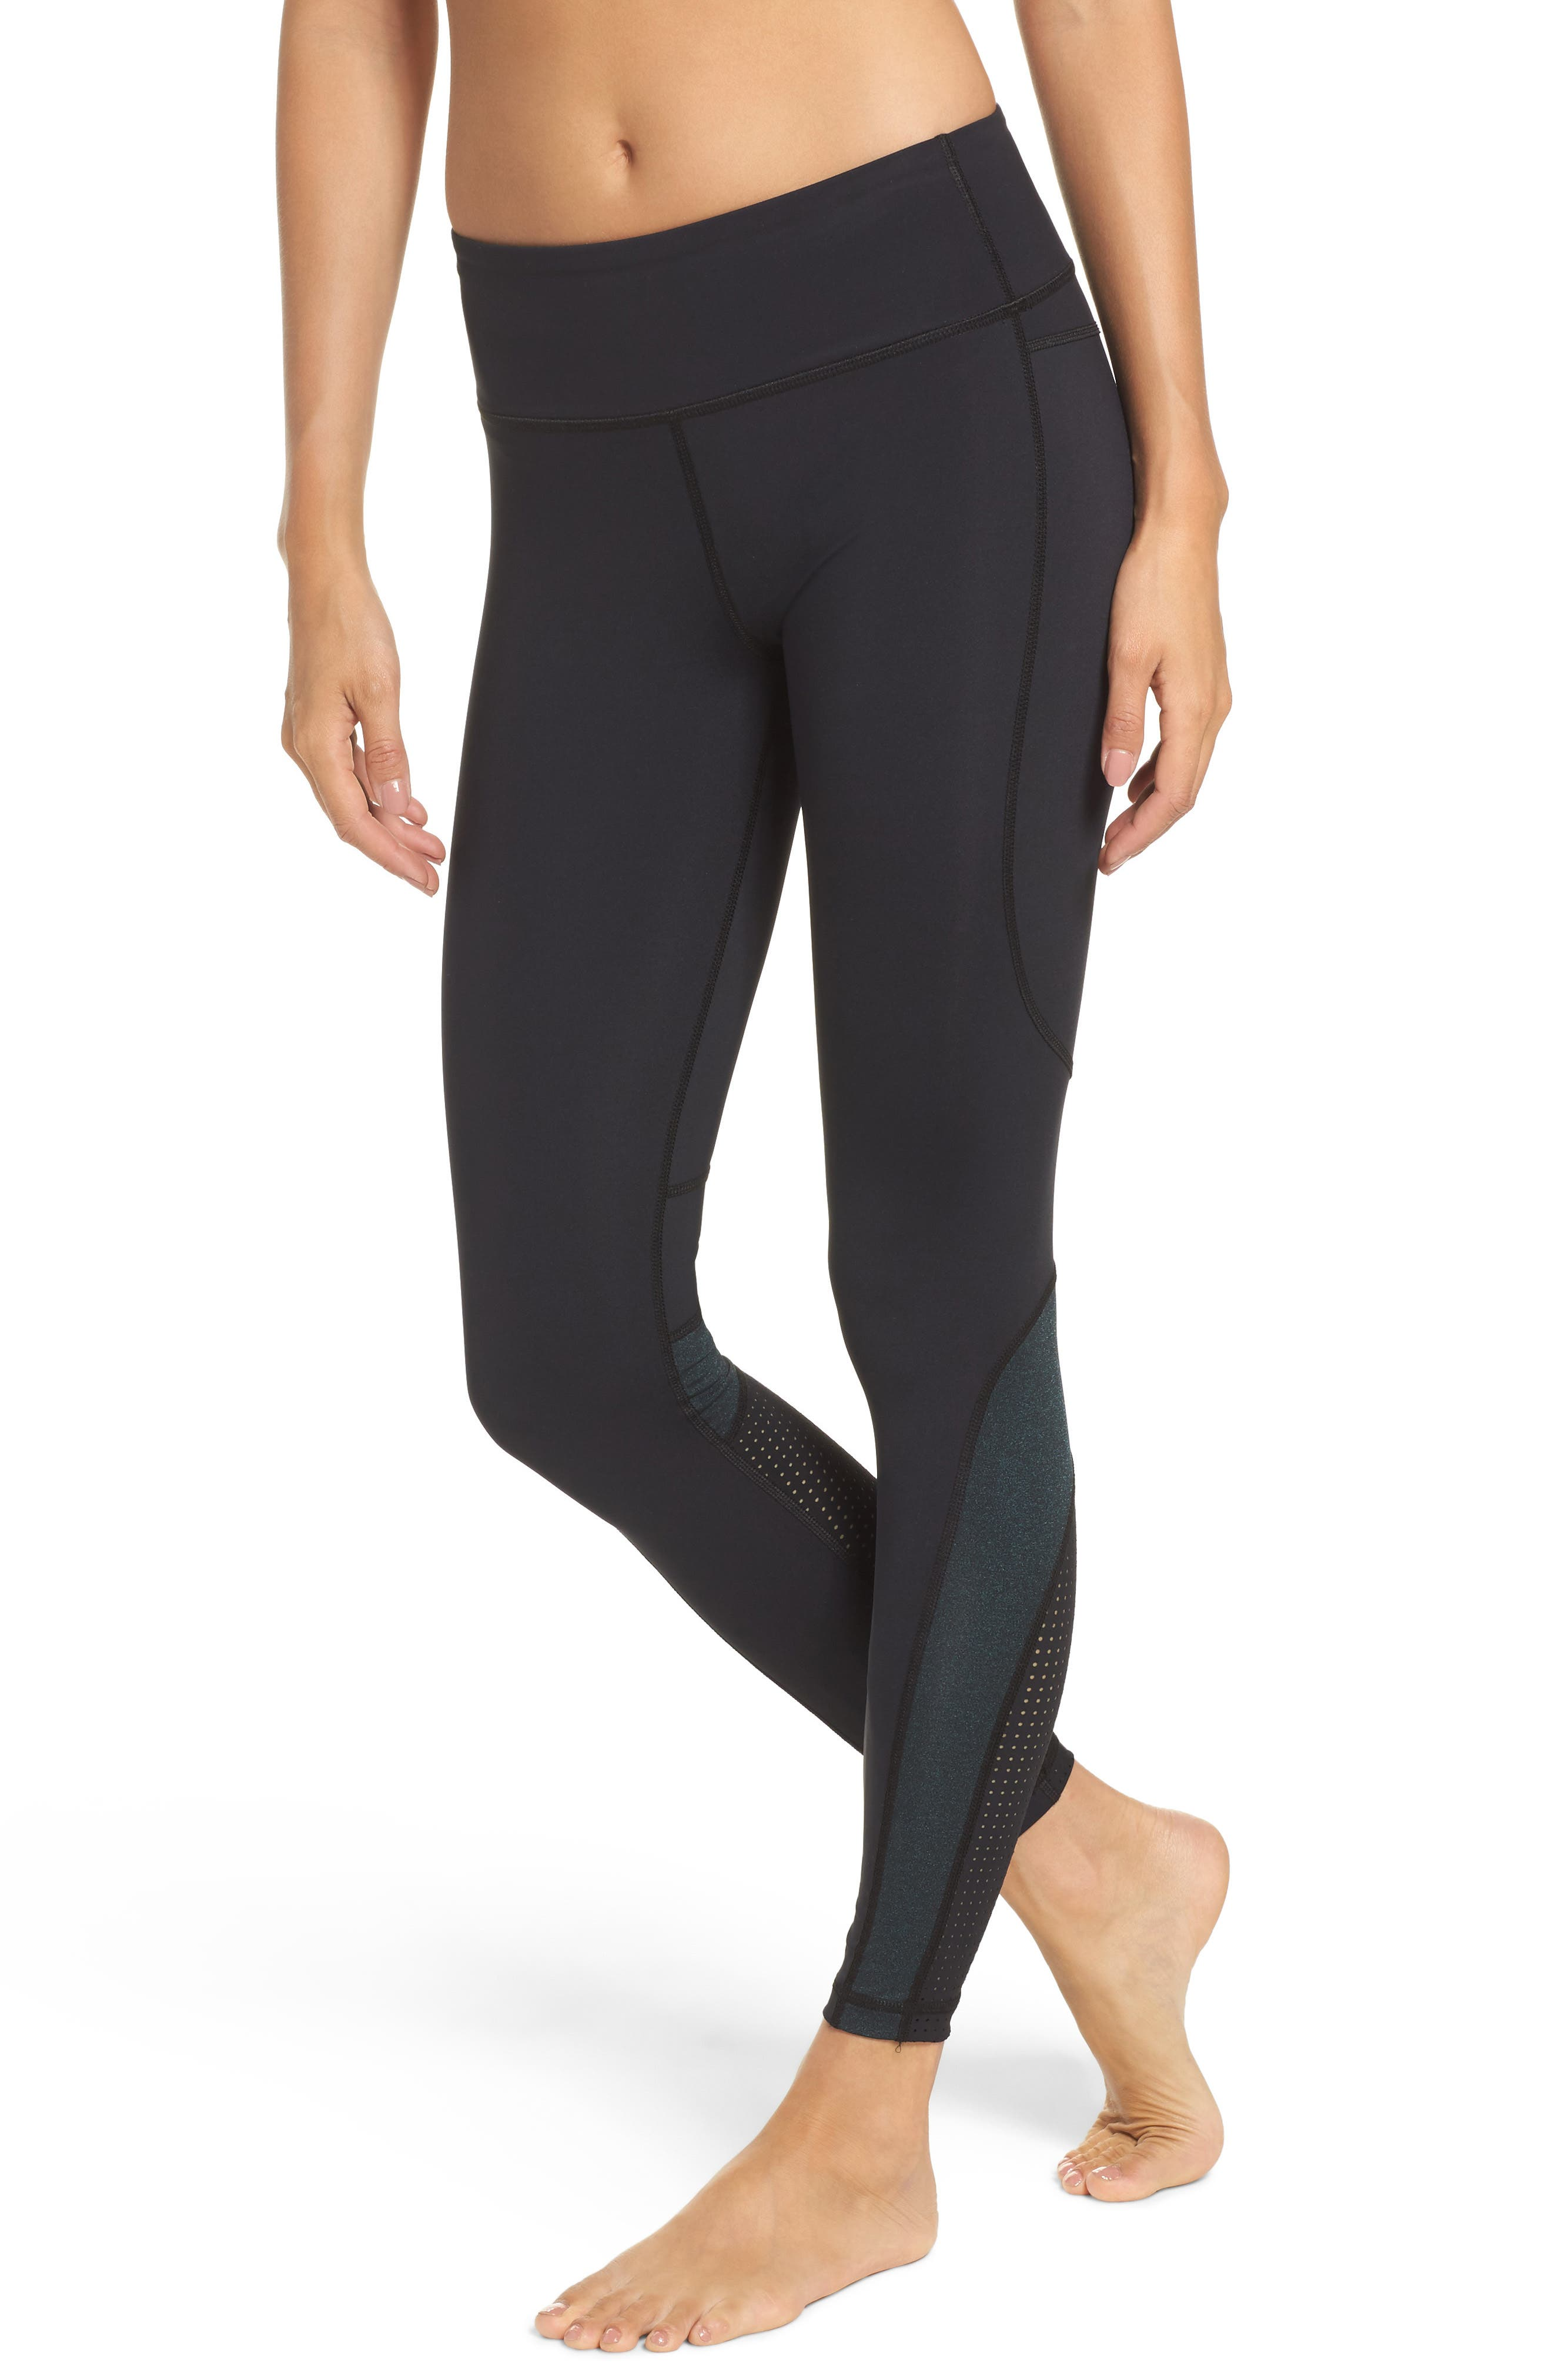 Siren Performance Tights,                         Main,                         color, 002